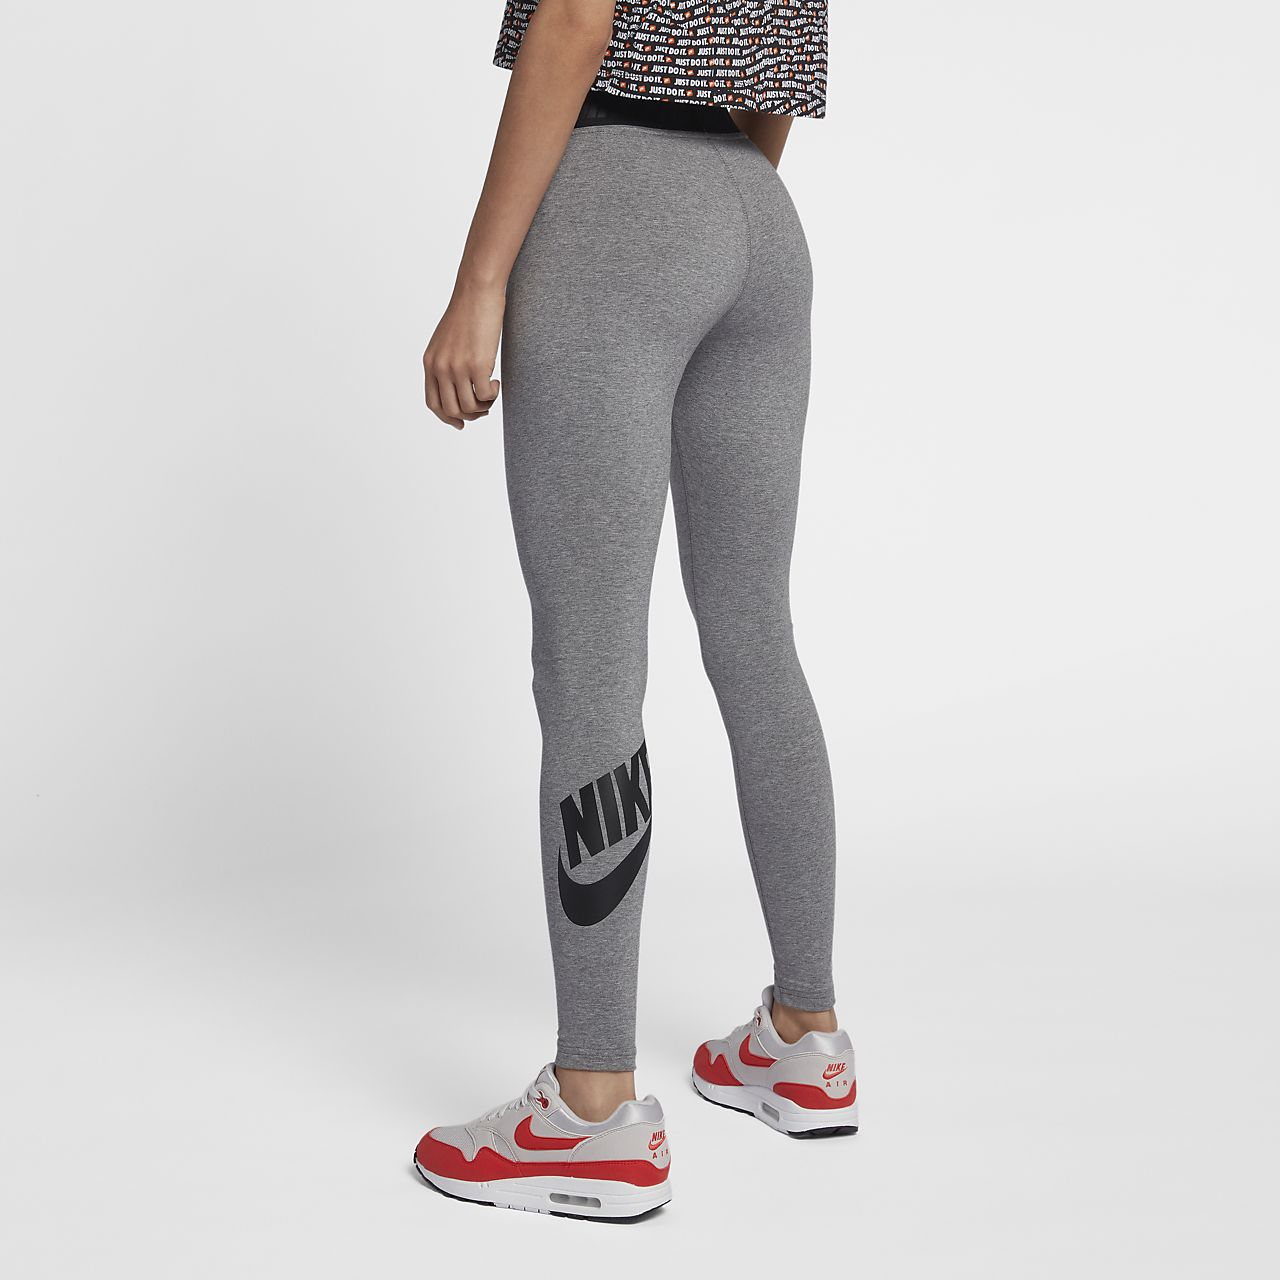 new styles 2dfd8 e2f6c ... Tight taille haute Nike Sportswear Leg-A-See pour Femme